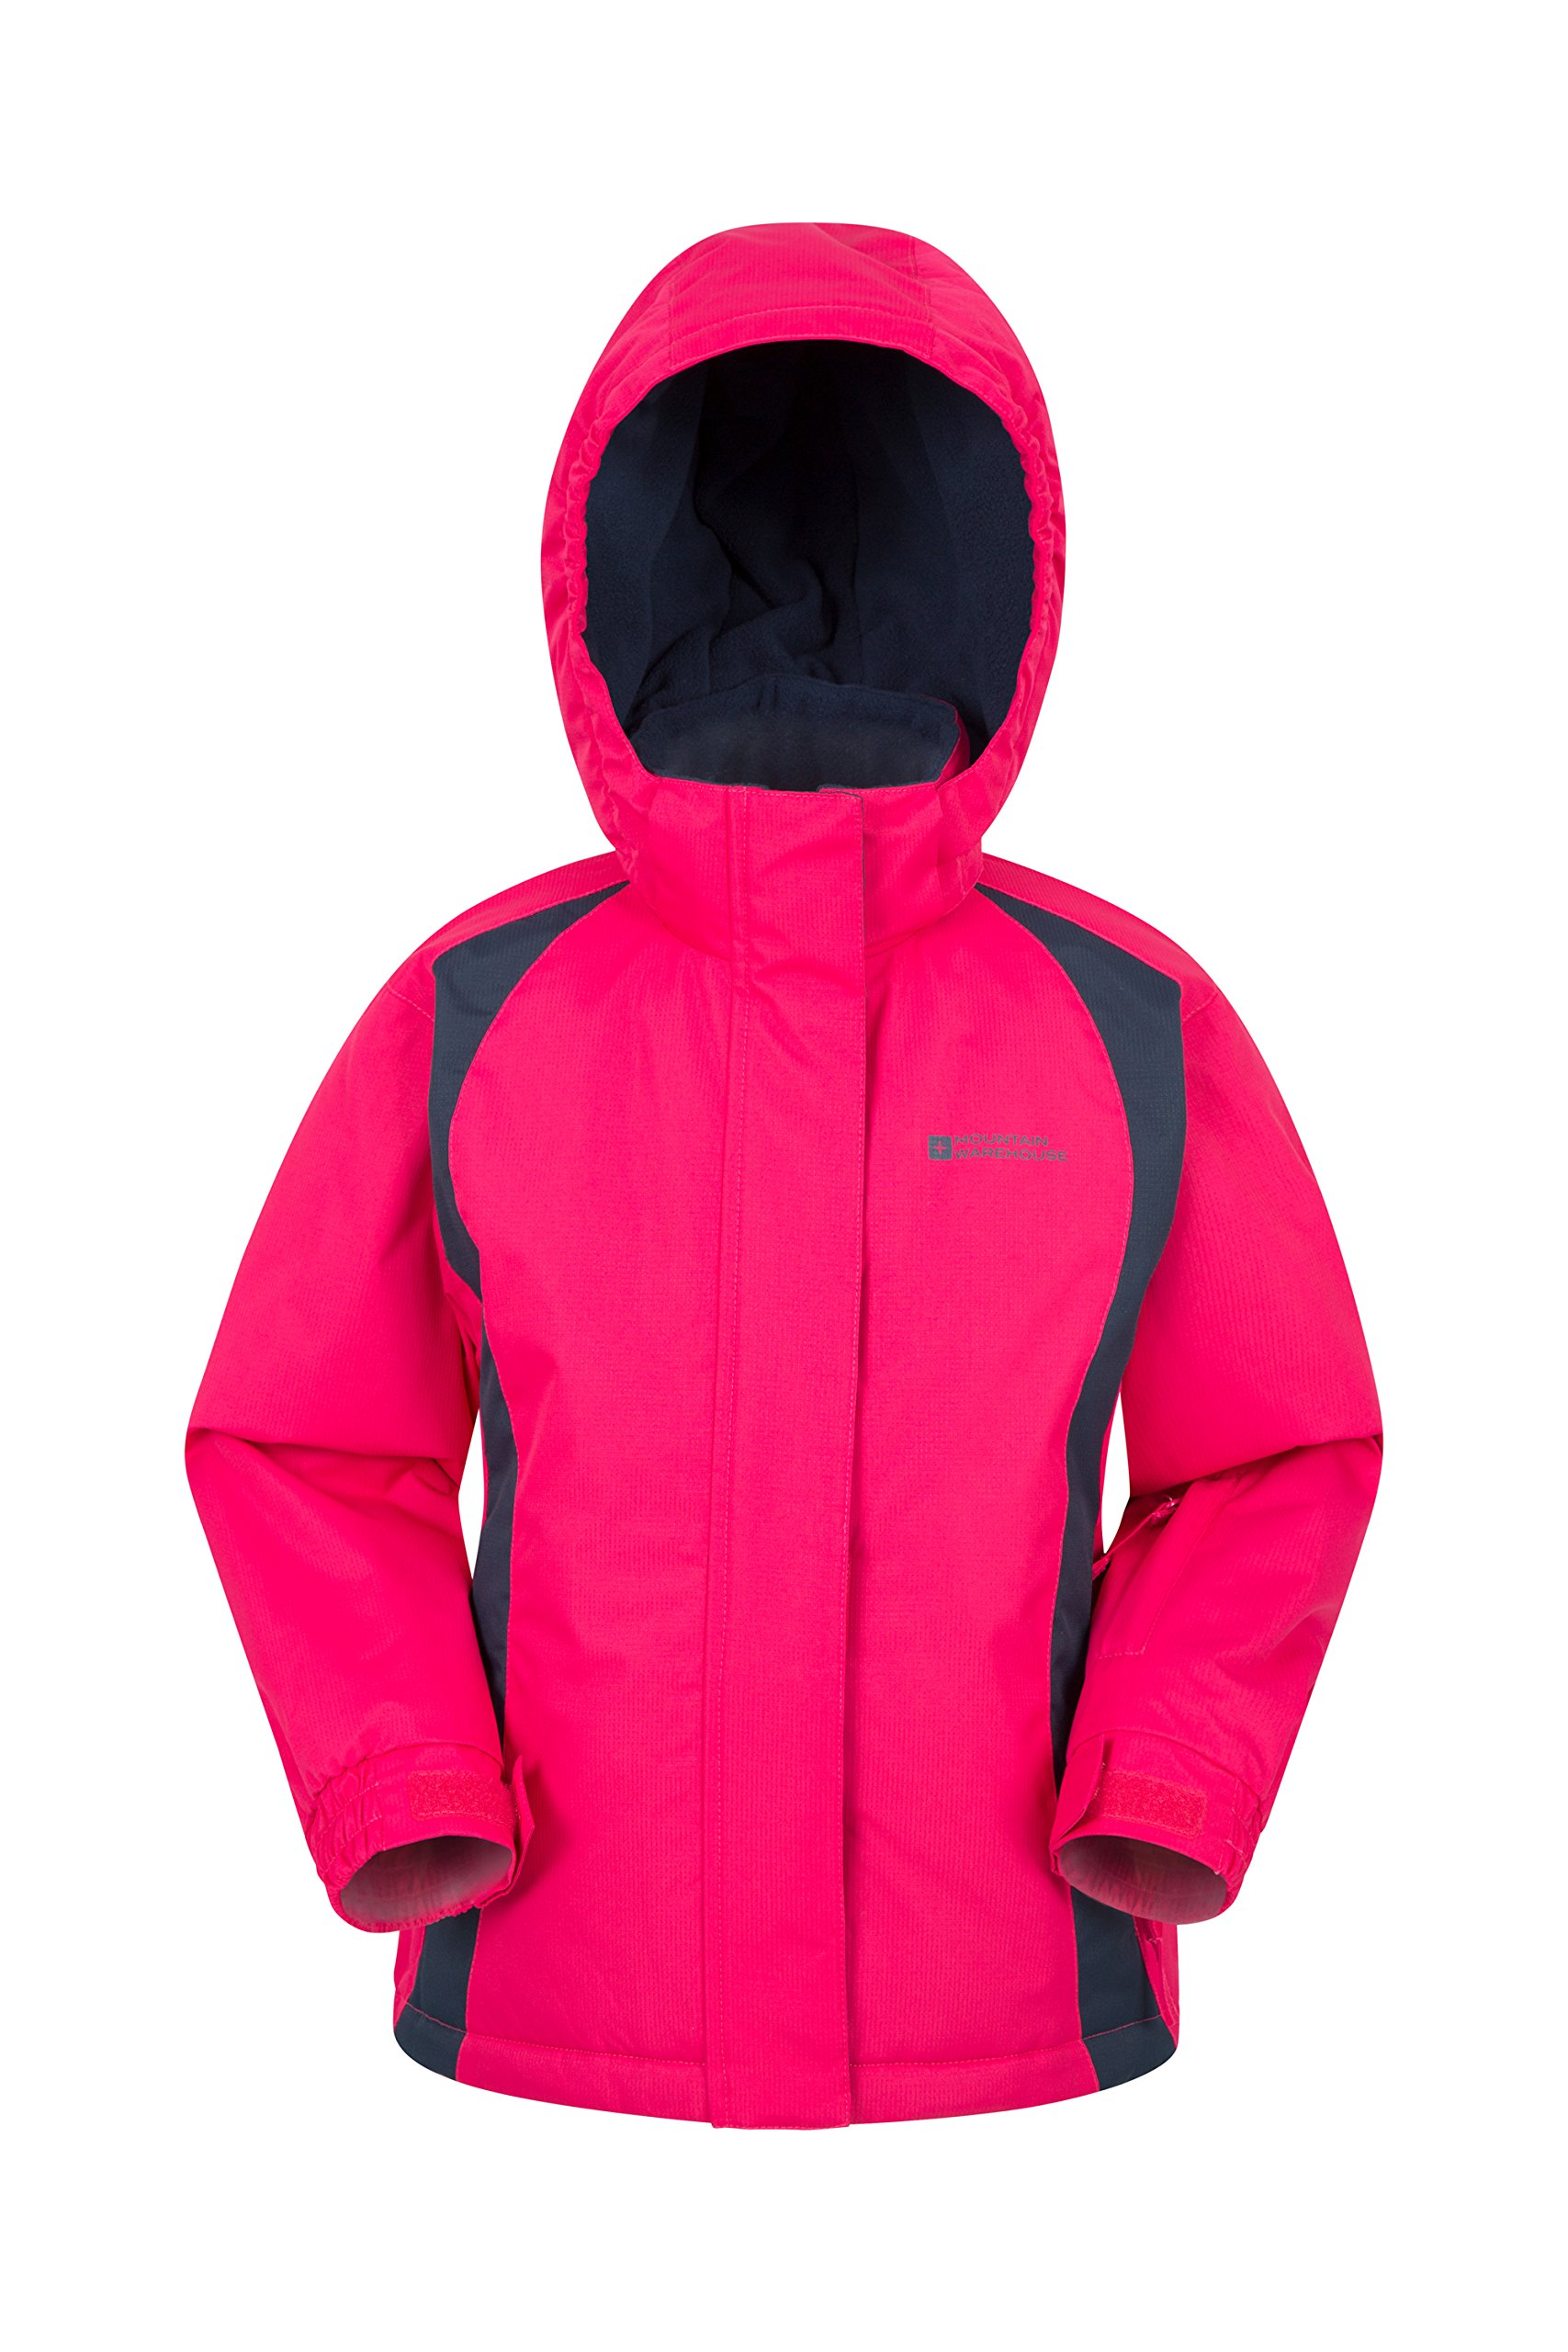 Best Rated in Girls' Skiing Jackets & Helpful Customer